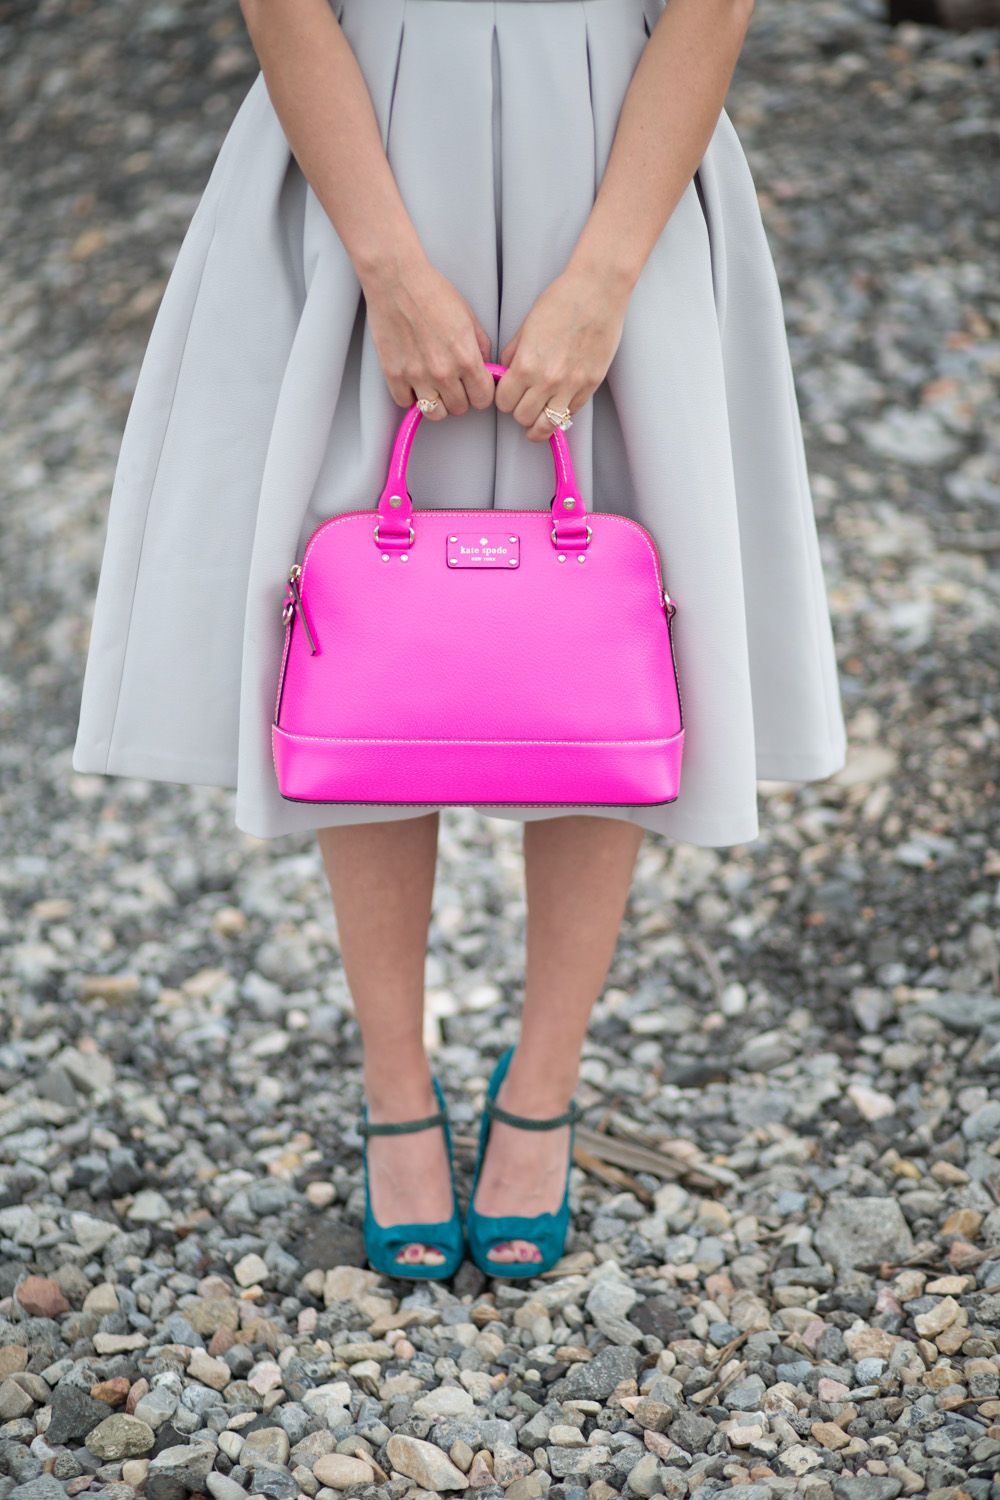 Neon Pink Kate Spade New York Hand Bag